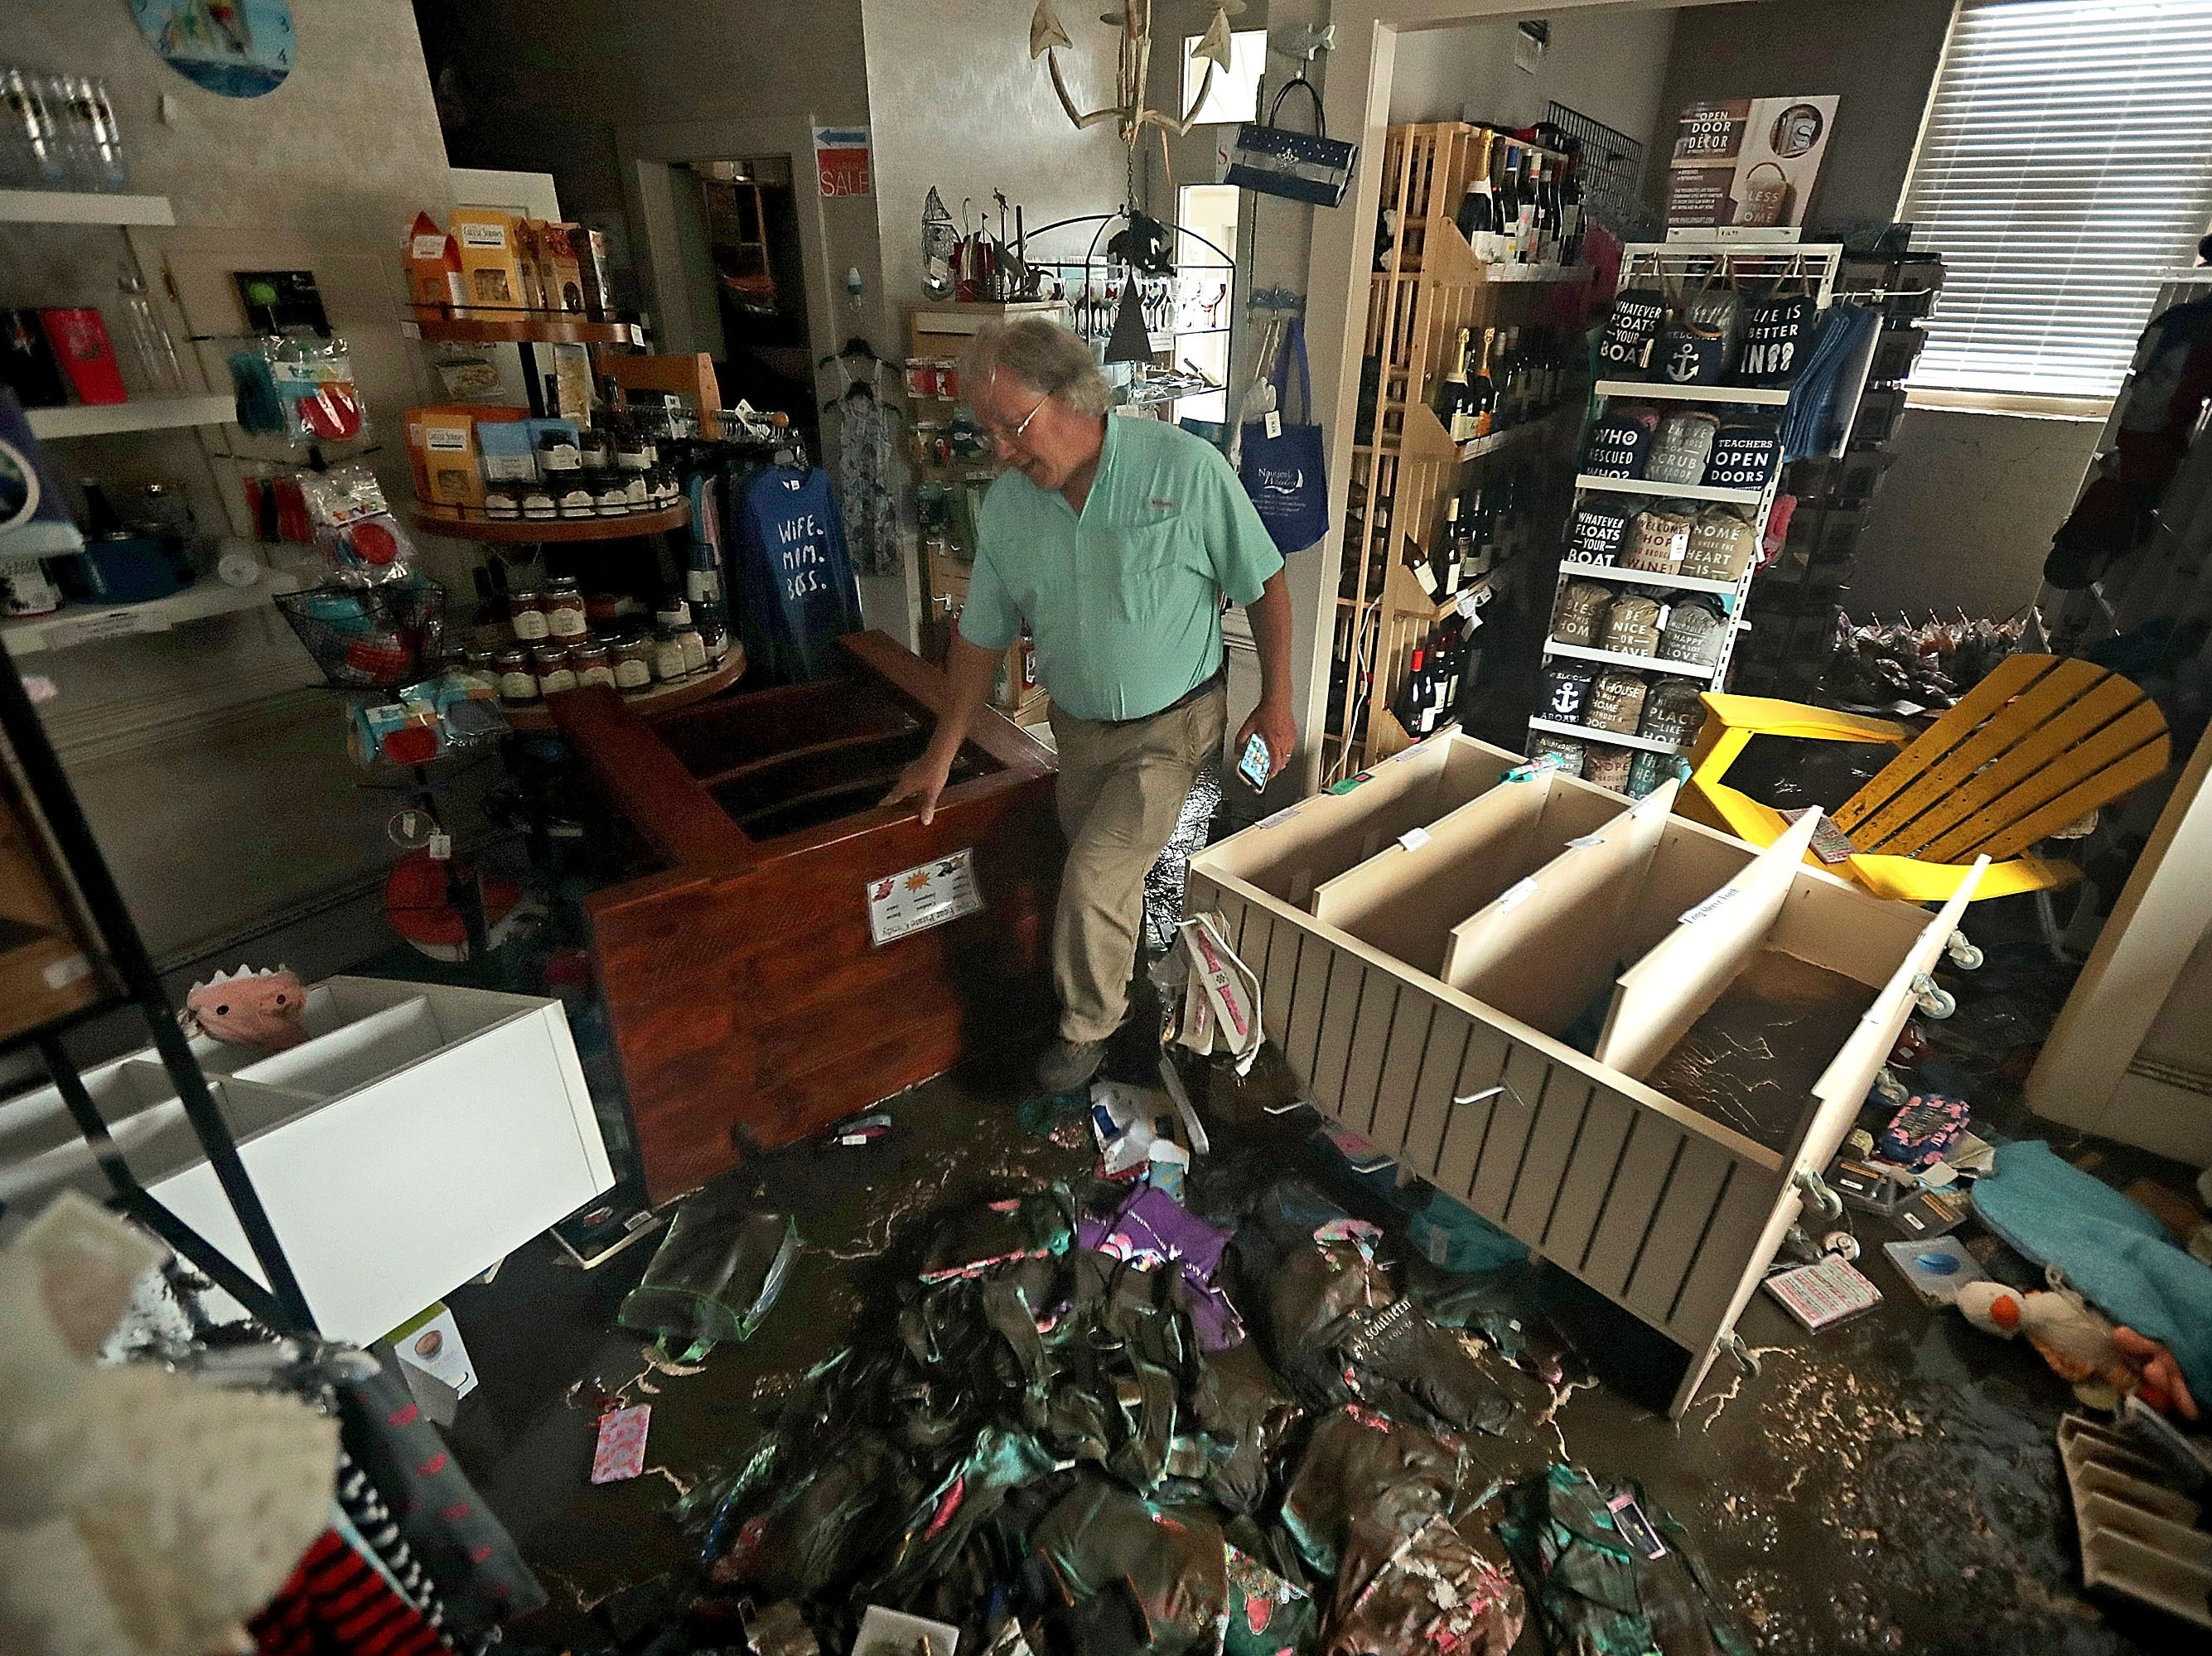 Bill Wheeler makes a video recording of the damage to his store, Nautical Wheelers, after the storm surge from Hurricane Florence filled it with four feet of water on Sept. 15, 2018 in New Bern, N.C.